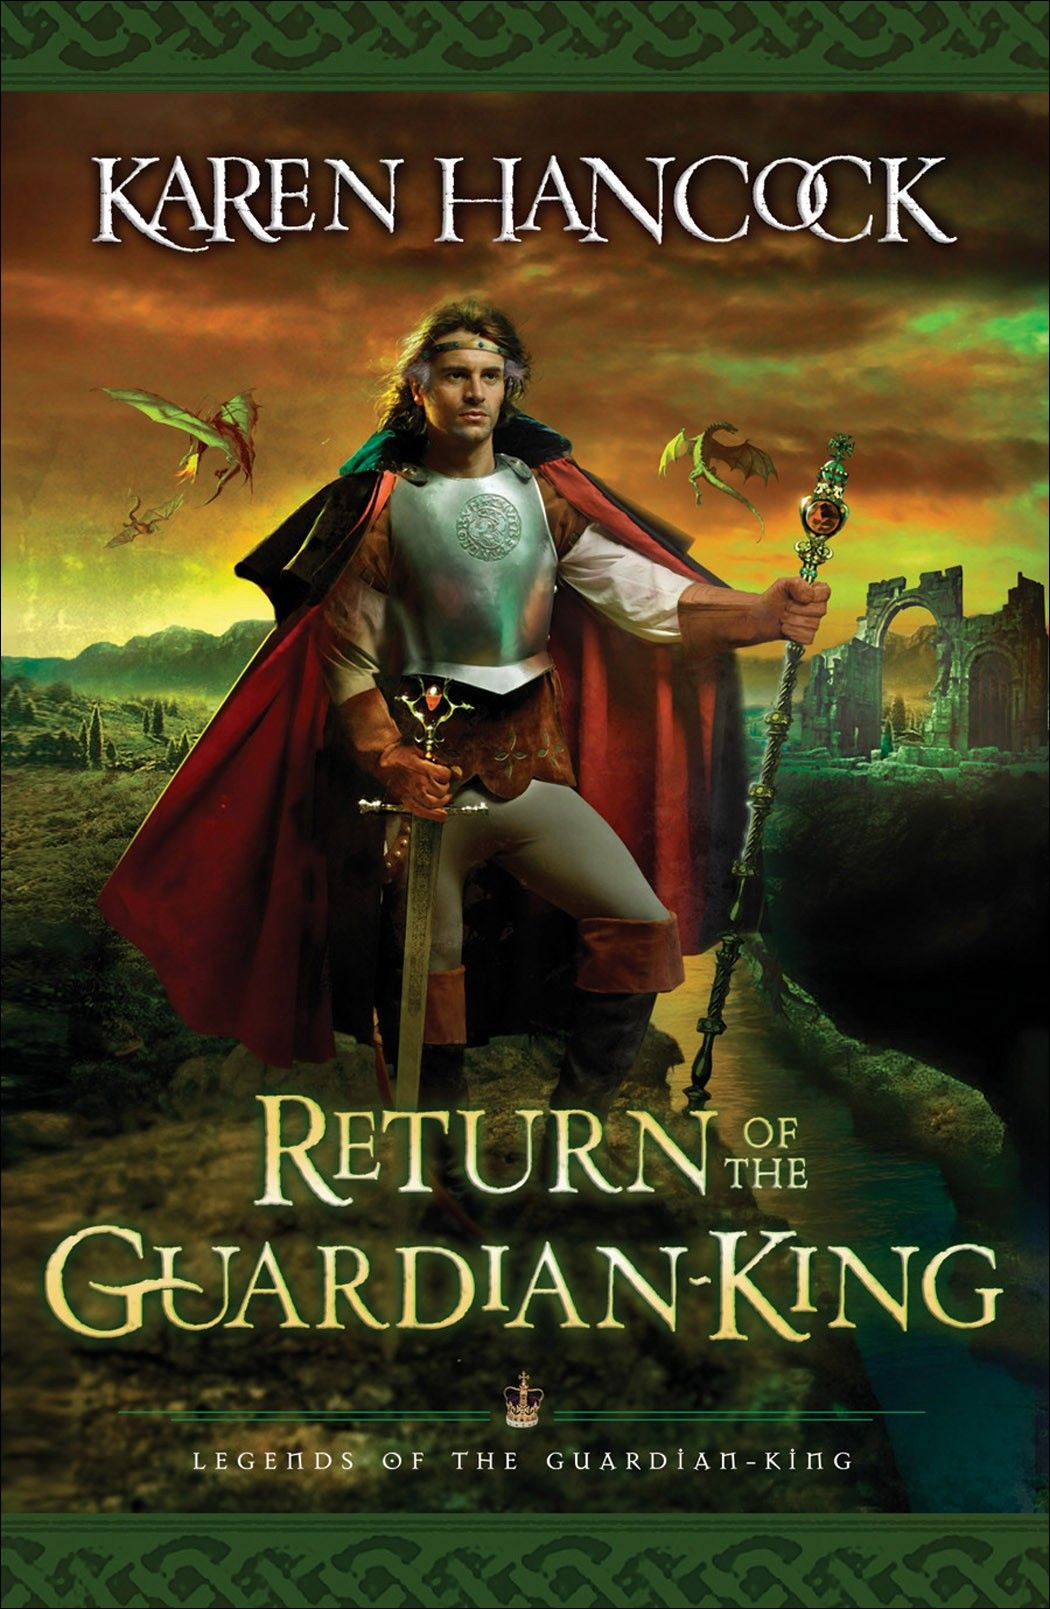 Return of the Guardian-King (Legends of the Guardian-King Book #4)